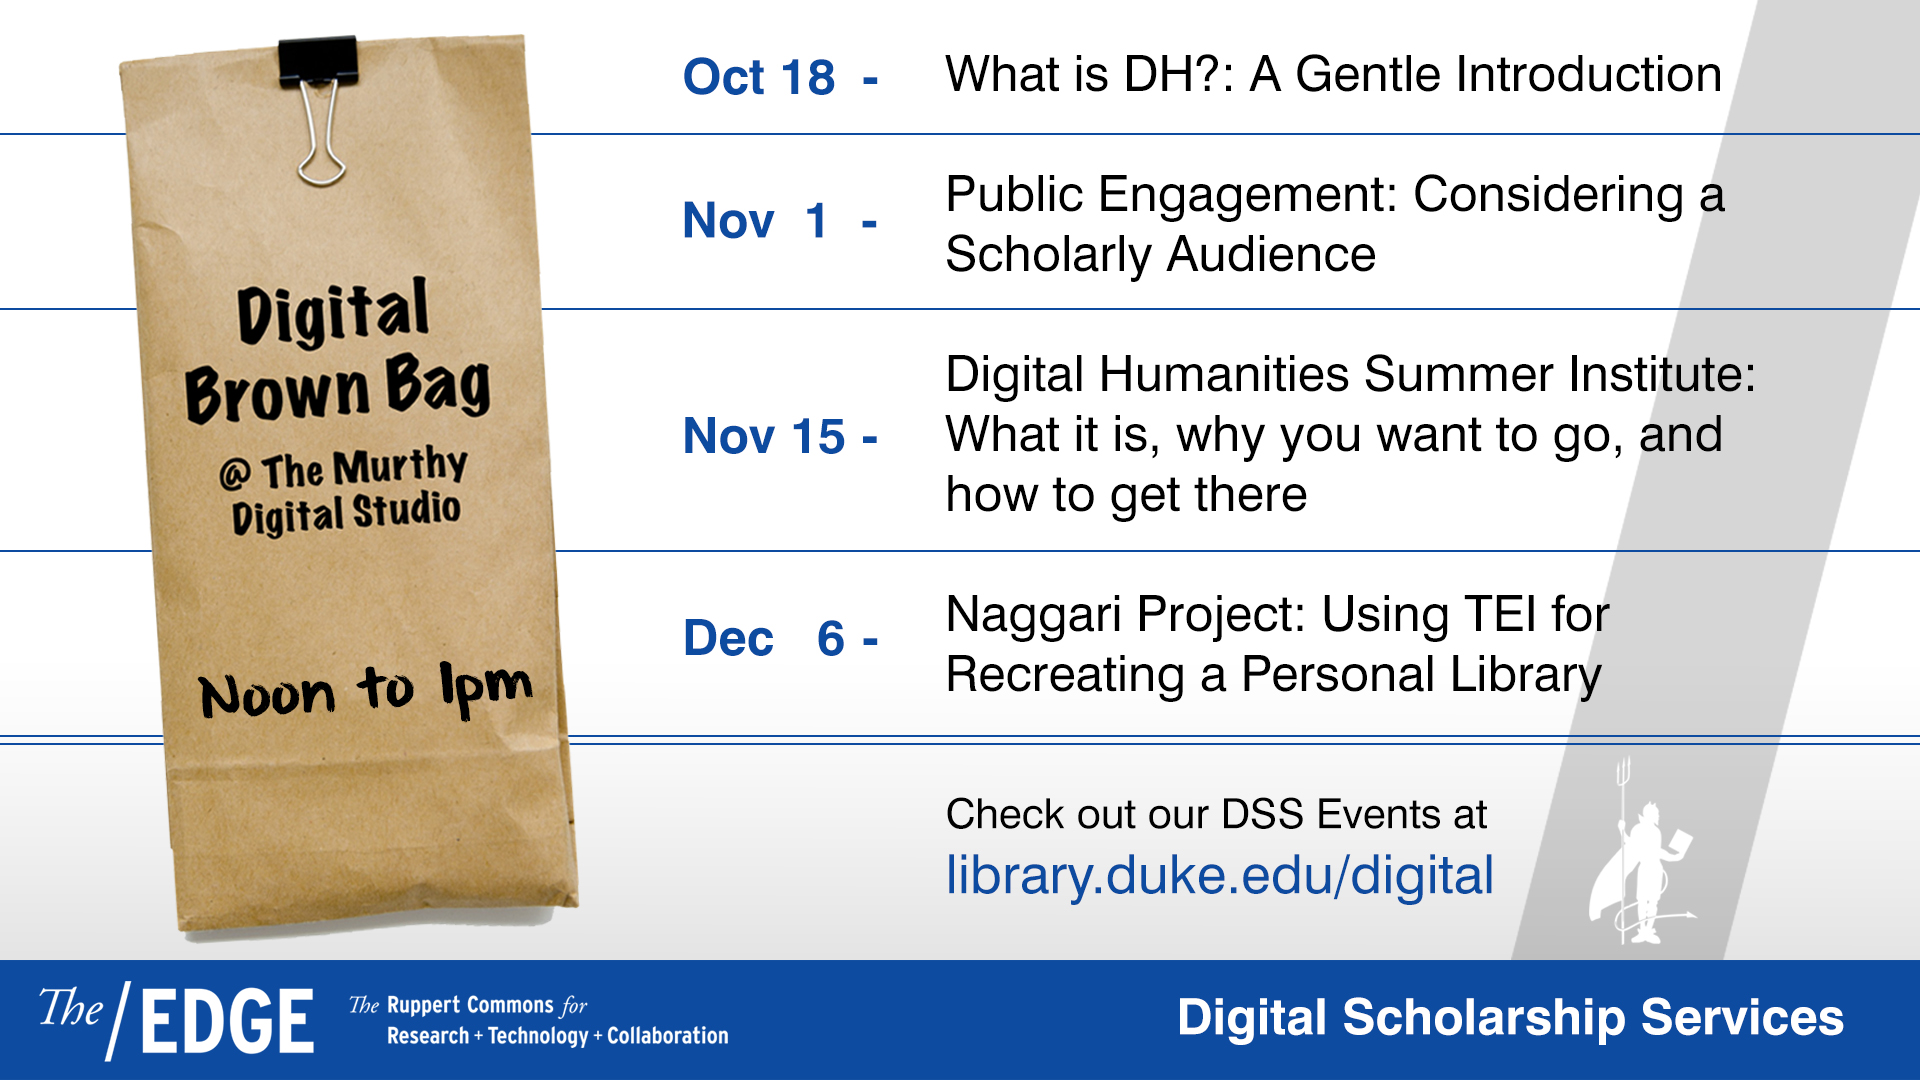 Digital Brown Bag Lunch Series: Digital Humanities Summer Institute: What is it, why you want to go, and how to get there